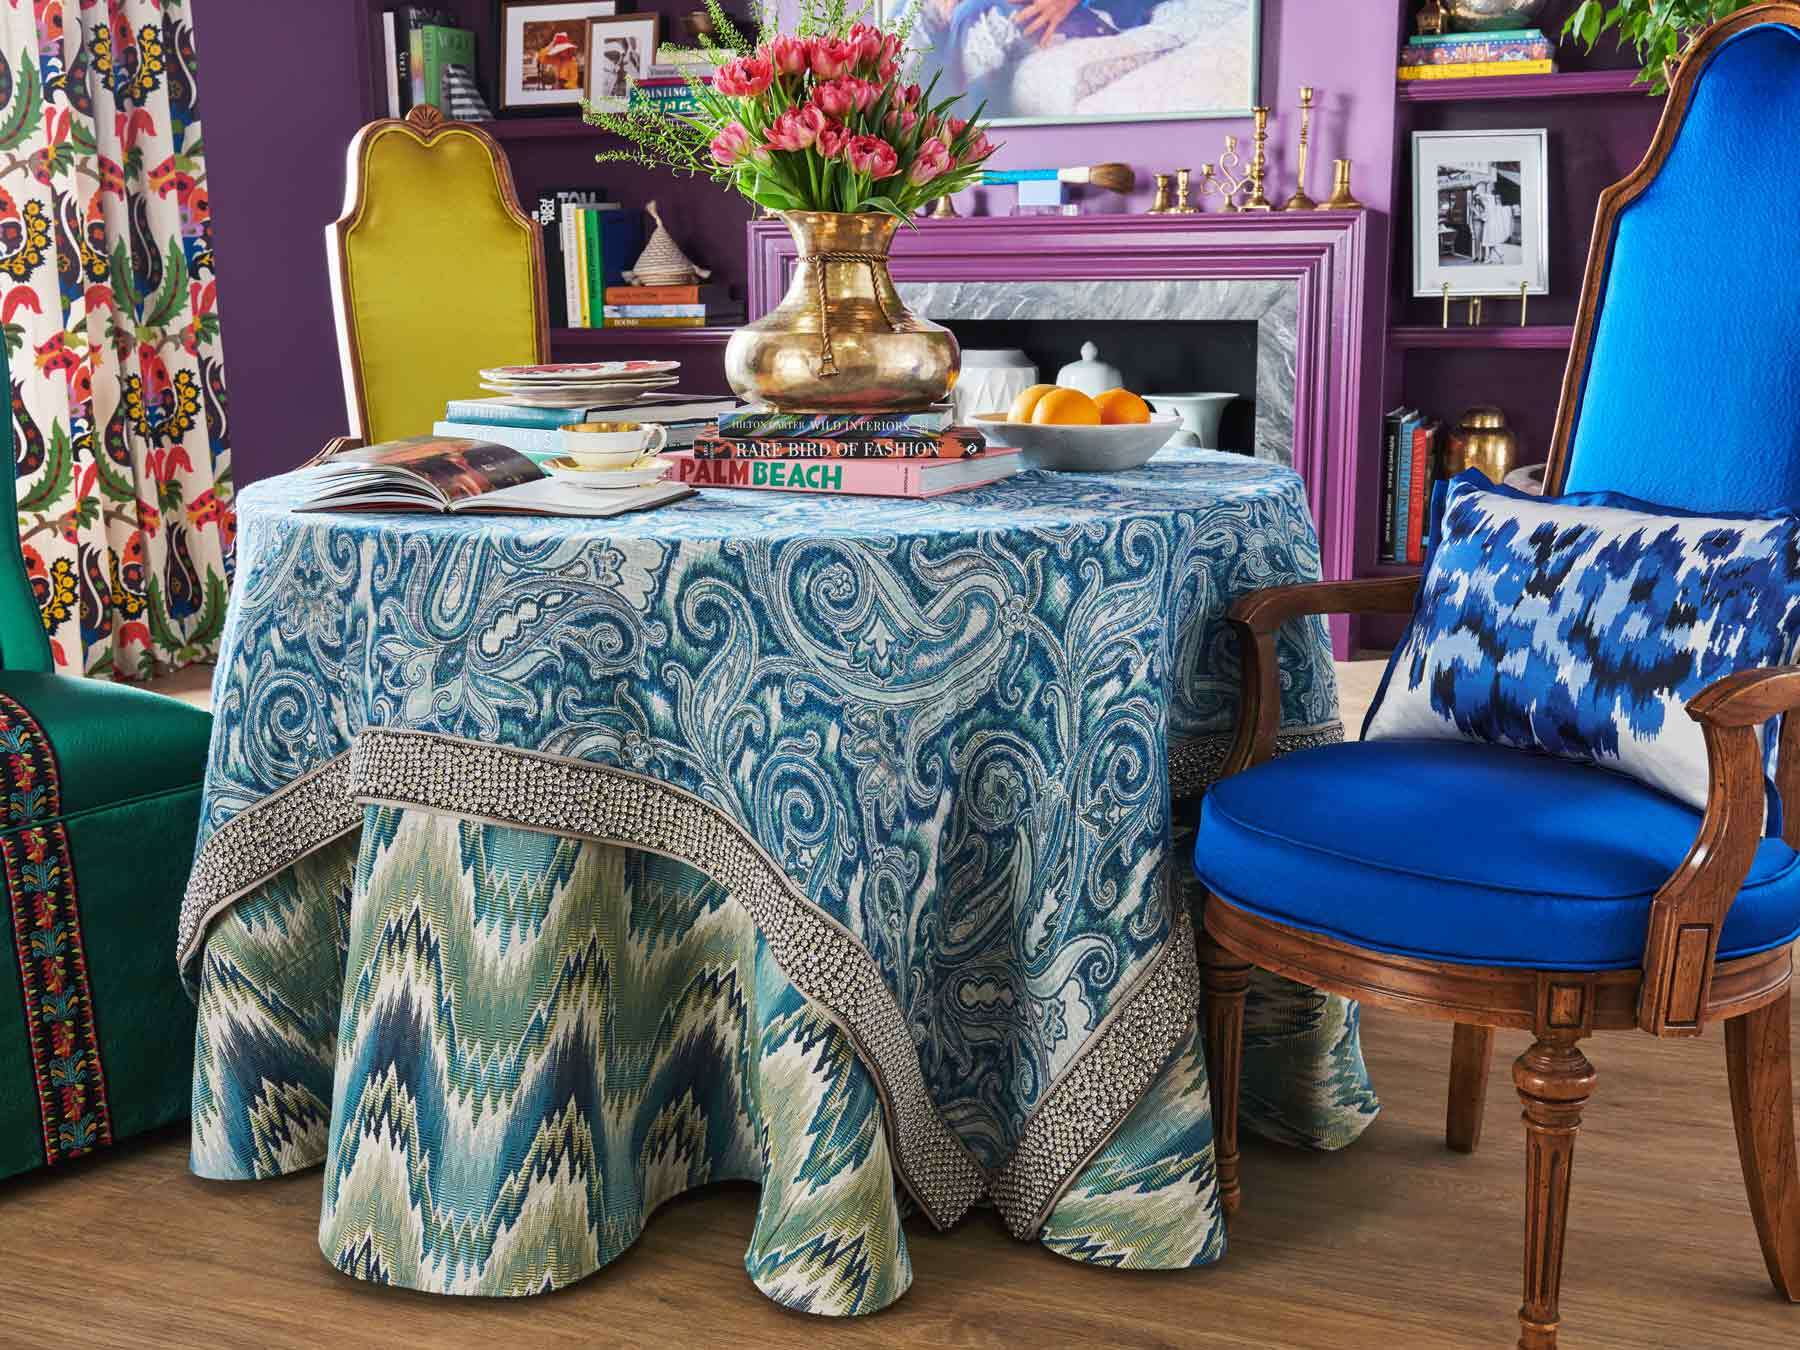 This chair and fabric from Fabricut will be part of a window installation at 179 Essex Street, dedicated to Iris Apfel.